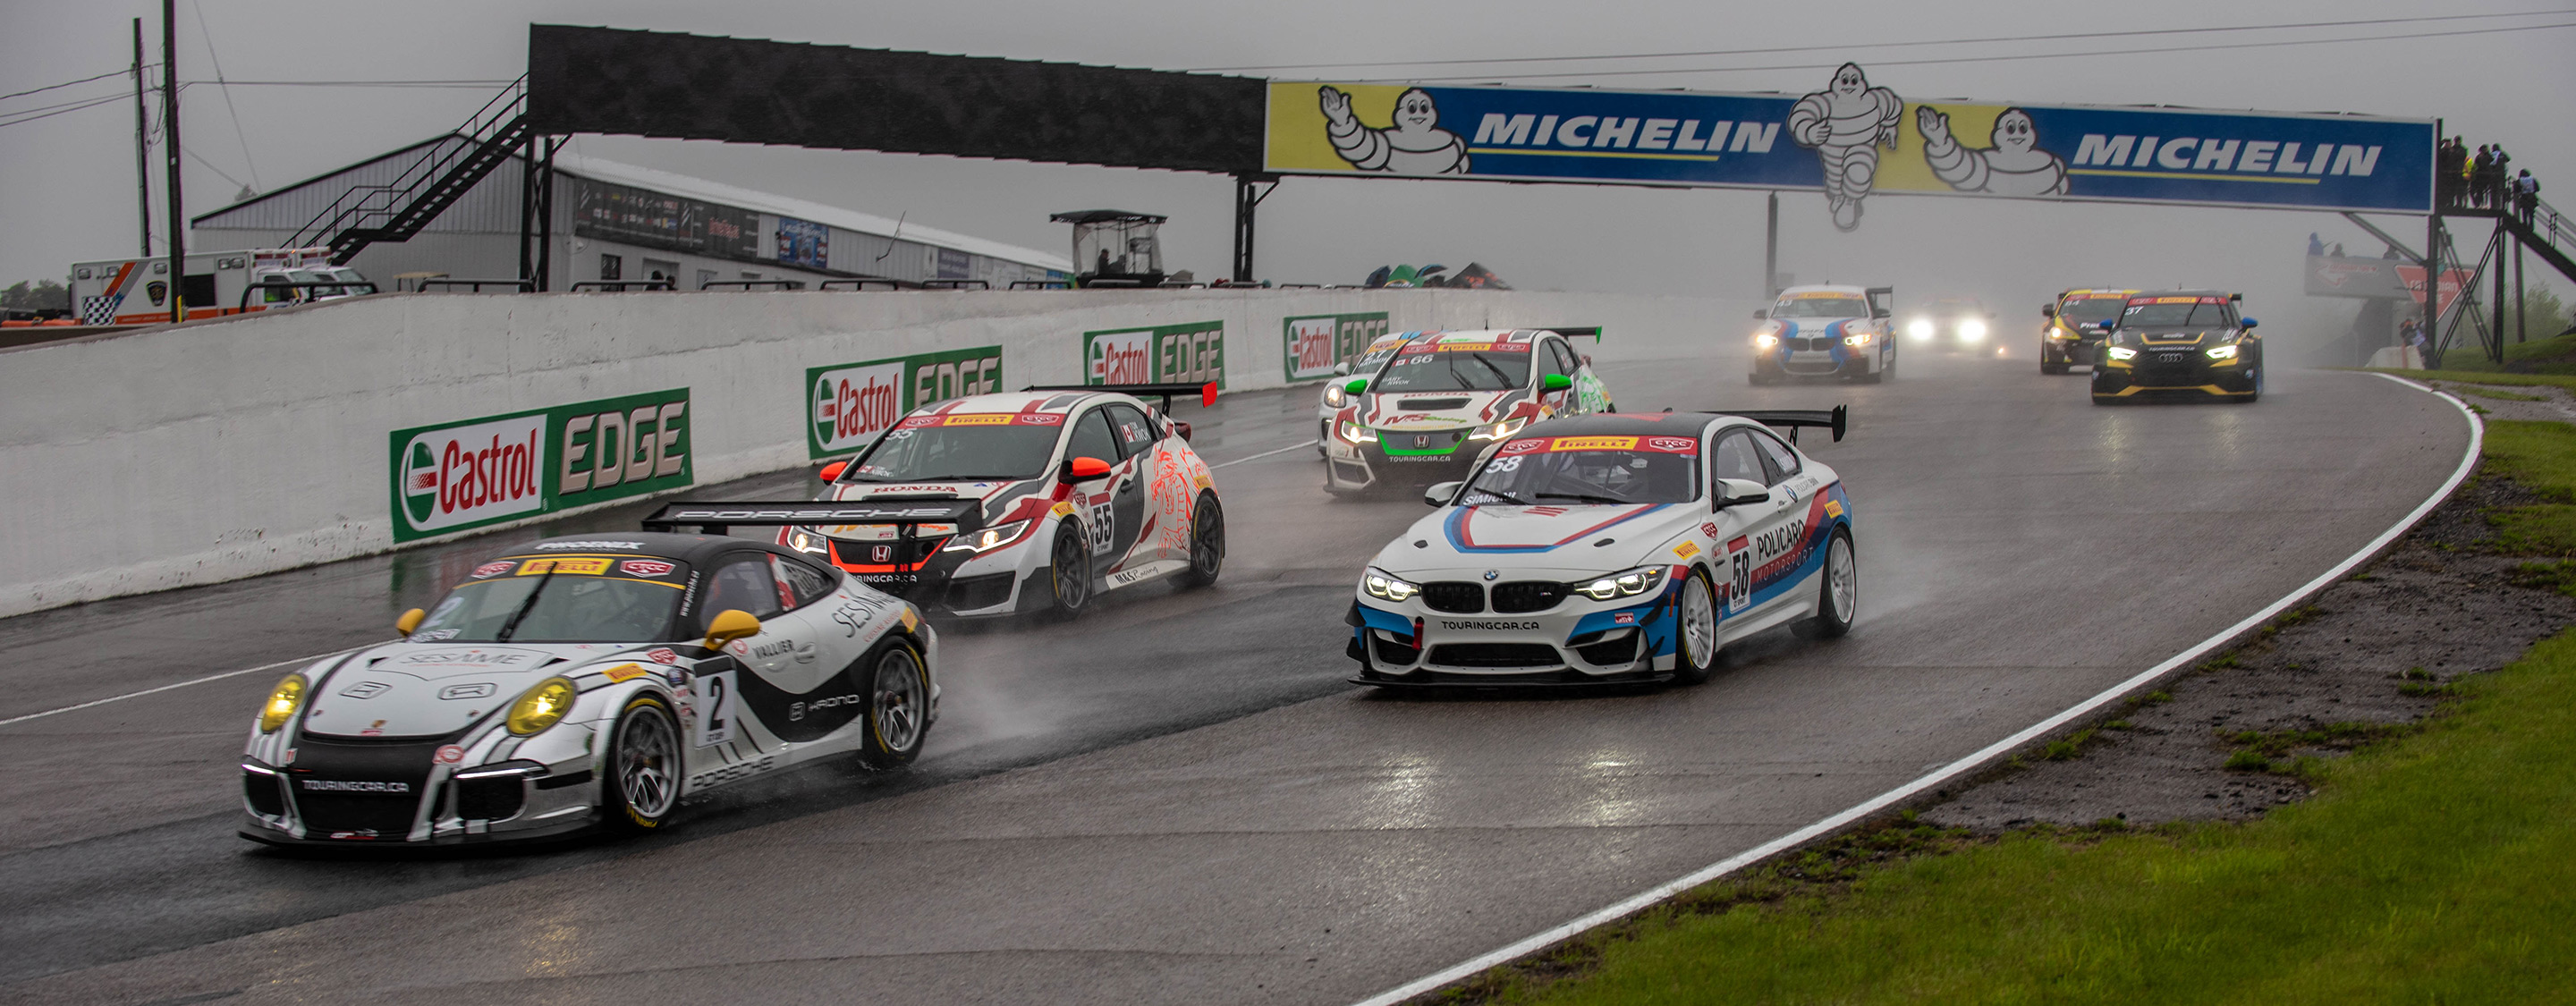 TrackWorthy - Canadian Touring Car Championship at Canadian Tire Motorsport Park (1)